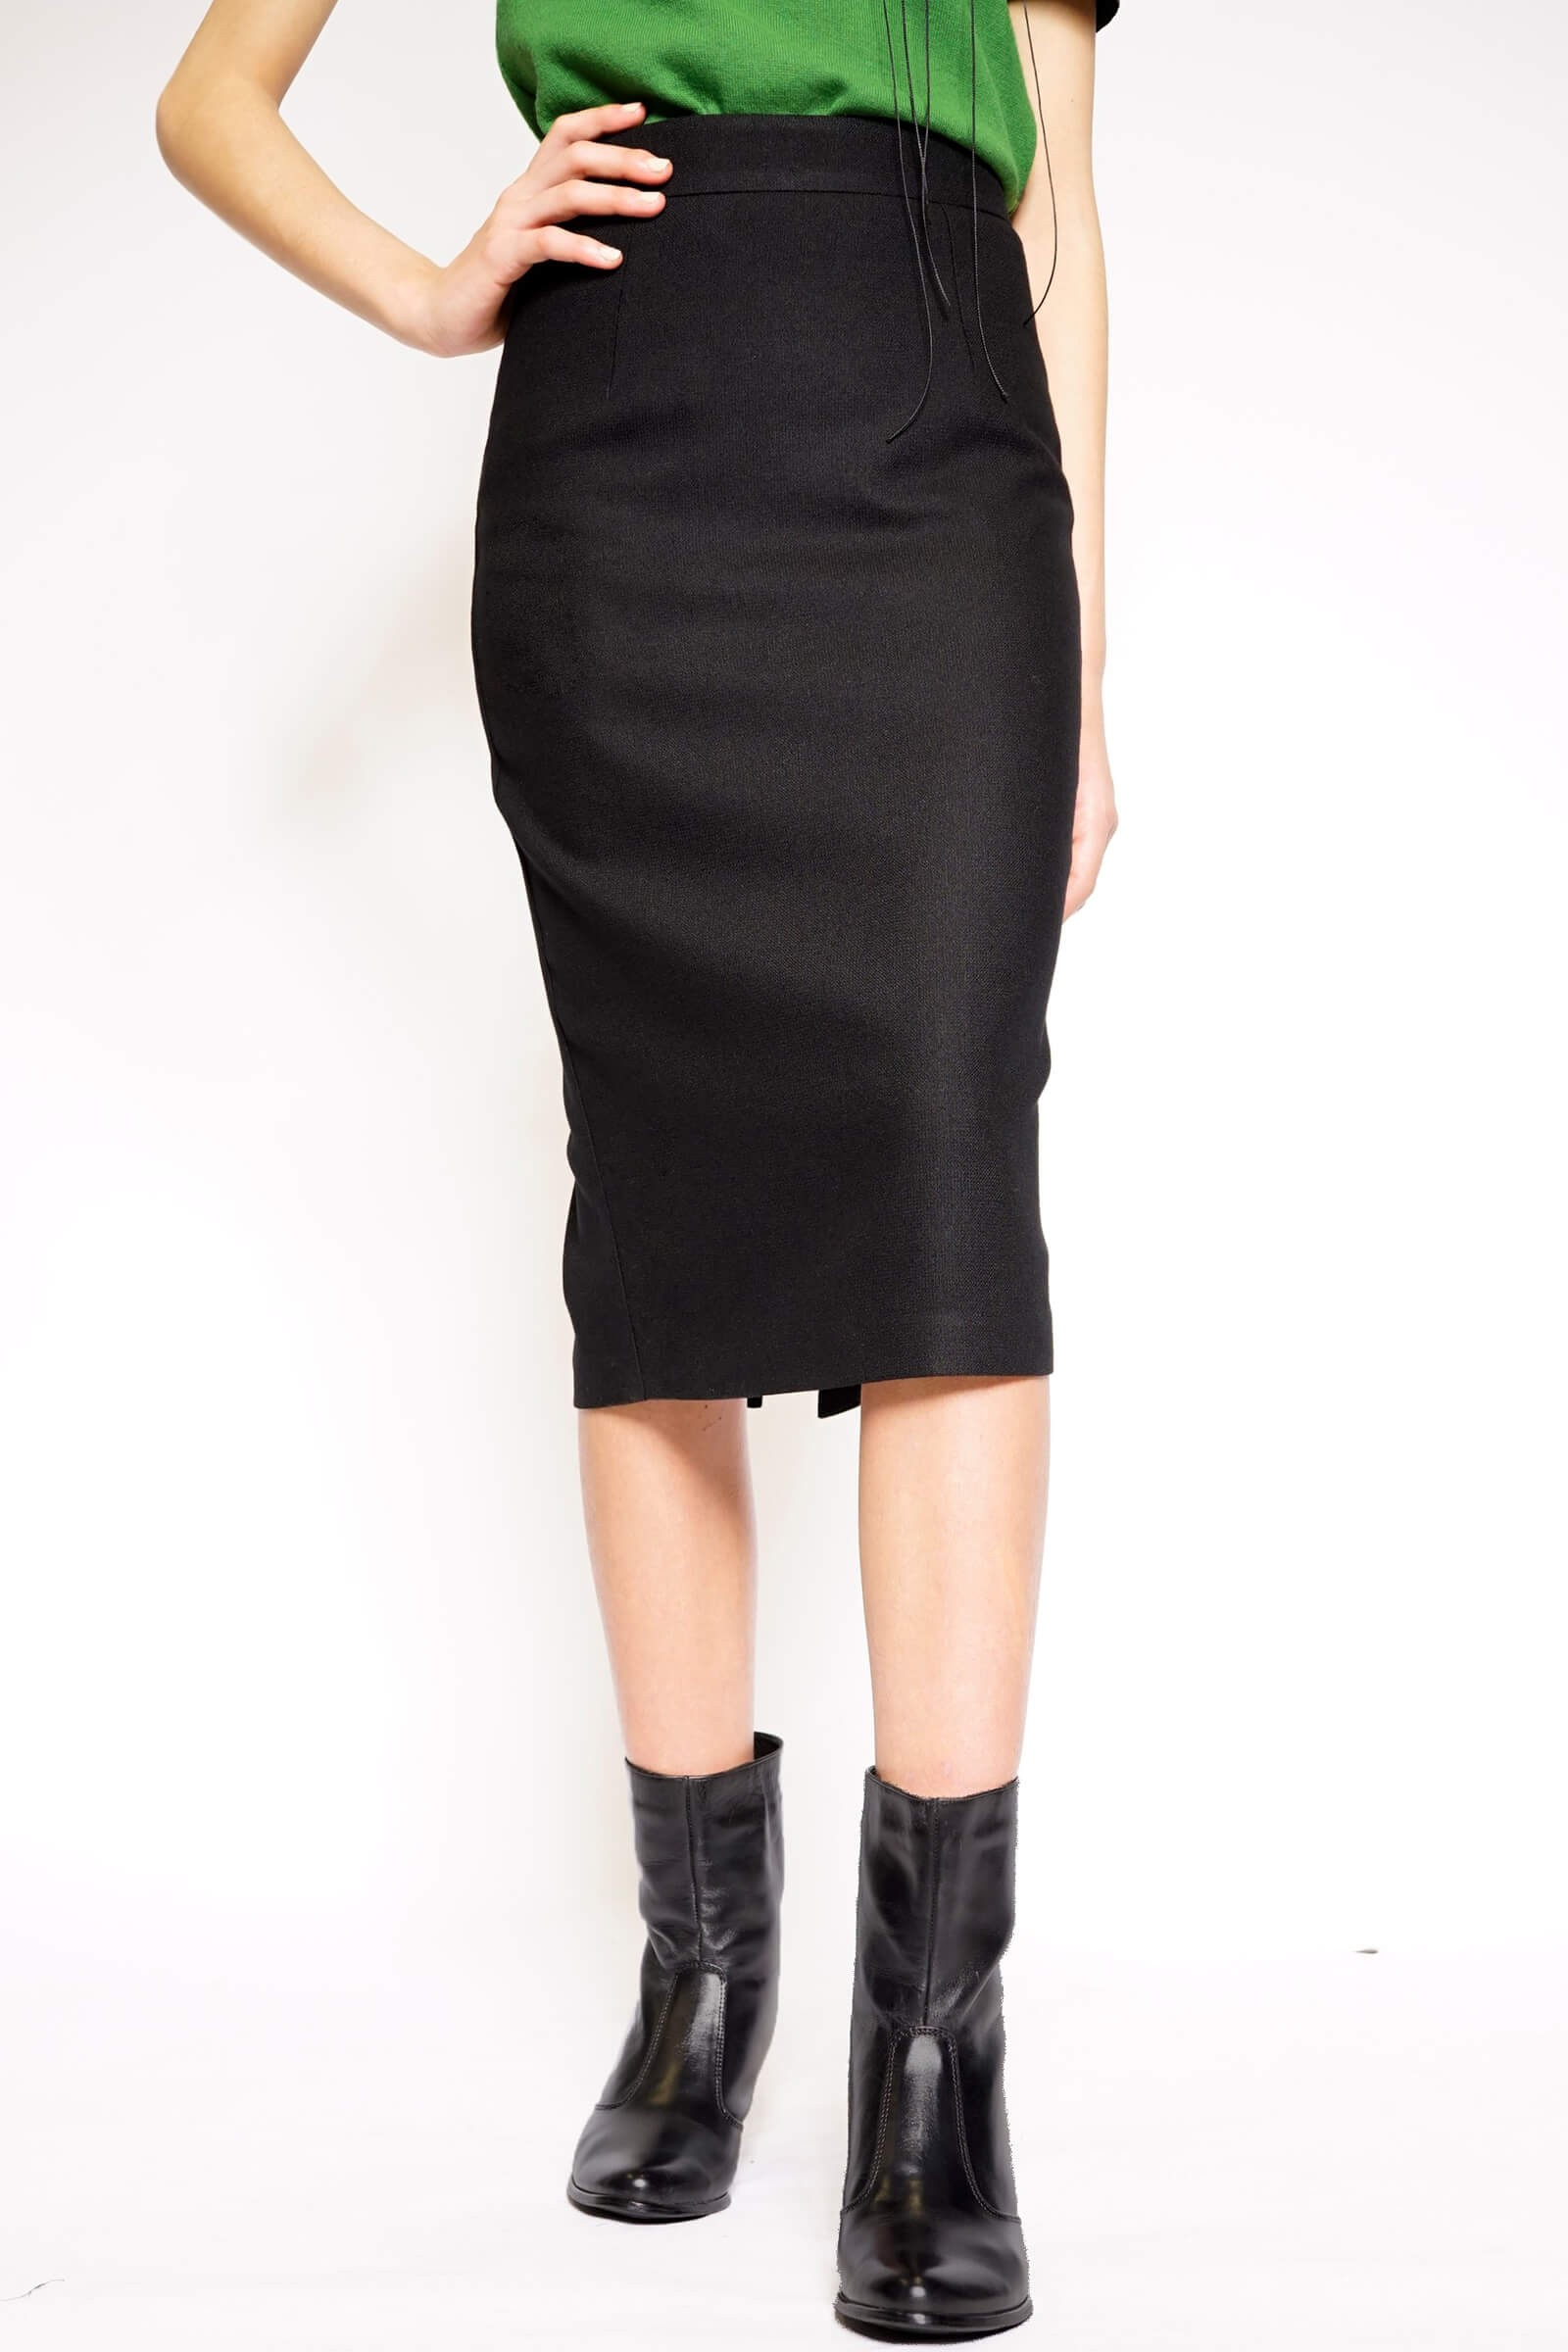 Black conical wool skirt